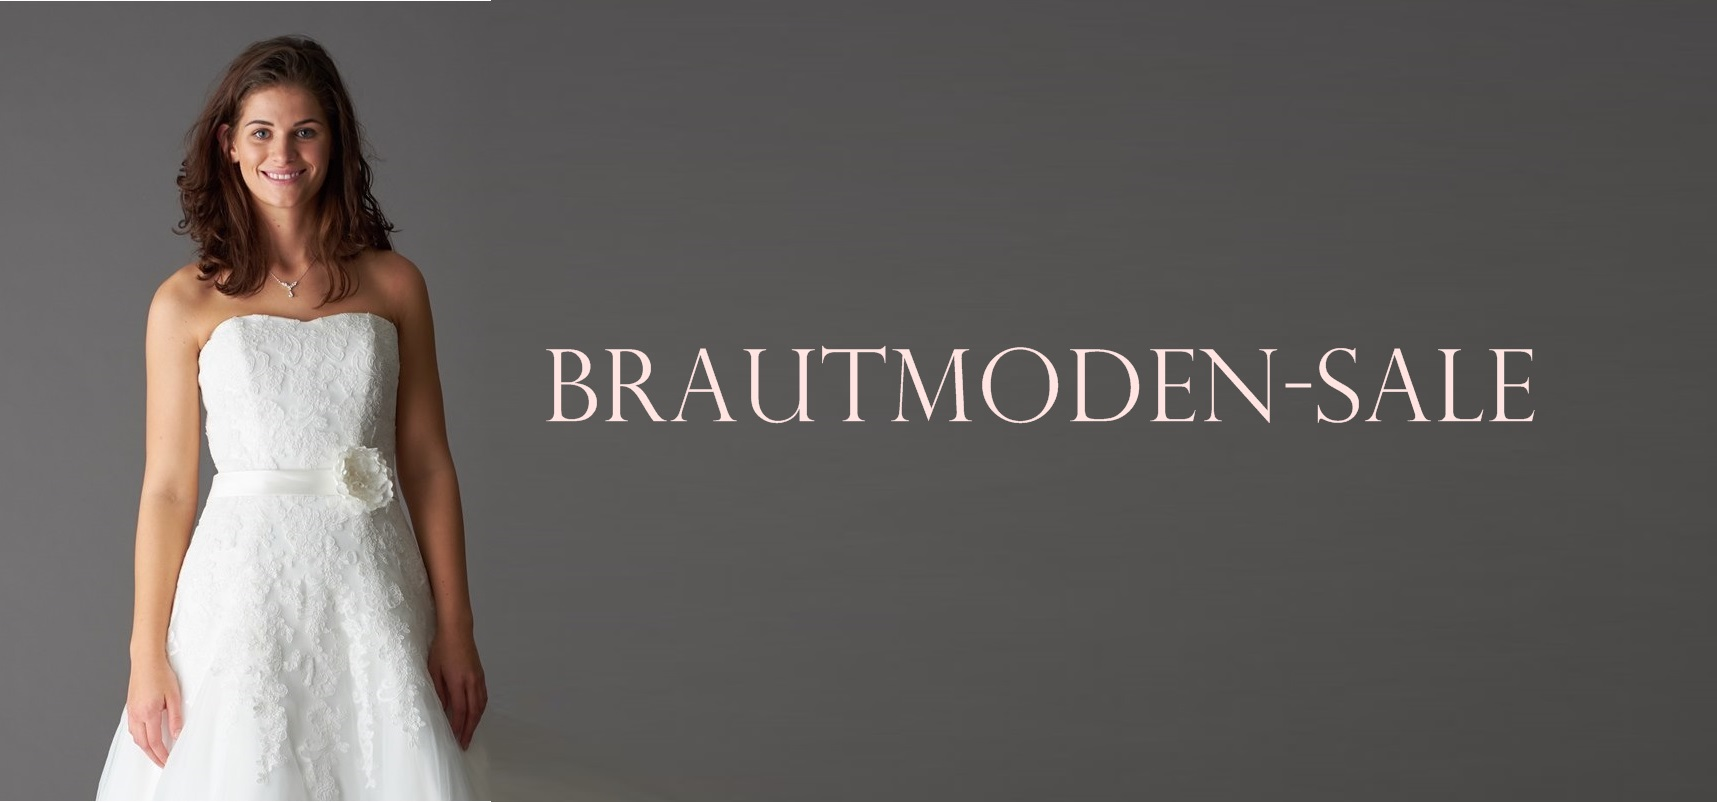 Brautmoden outlet online